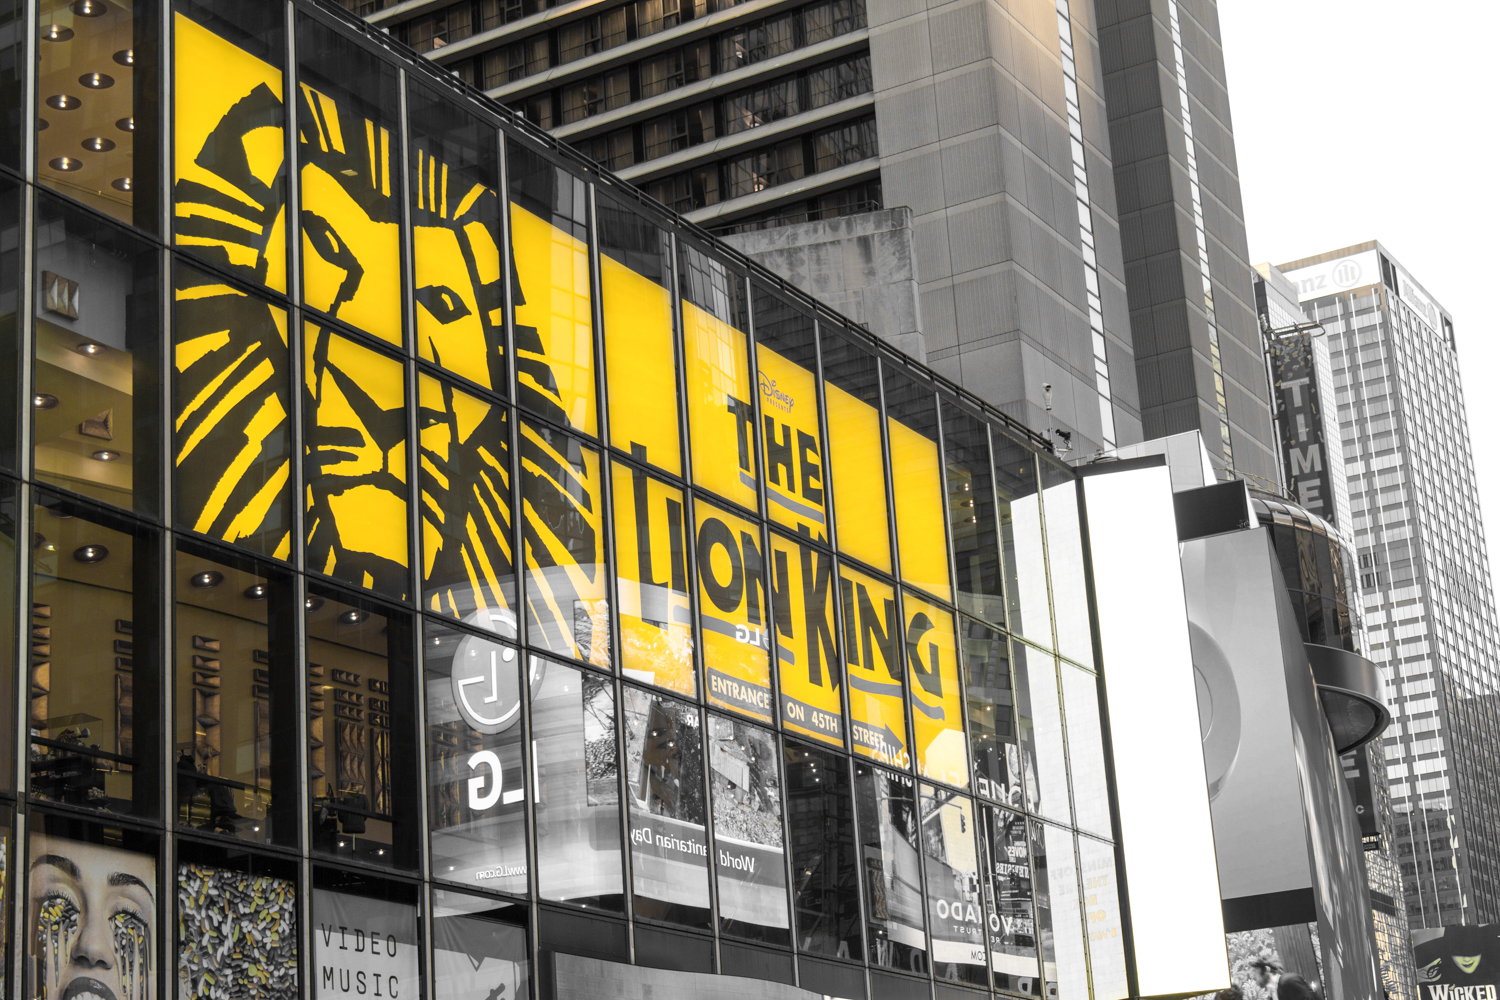 The Lion King Broadway musical!